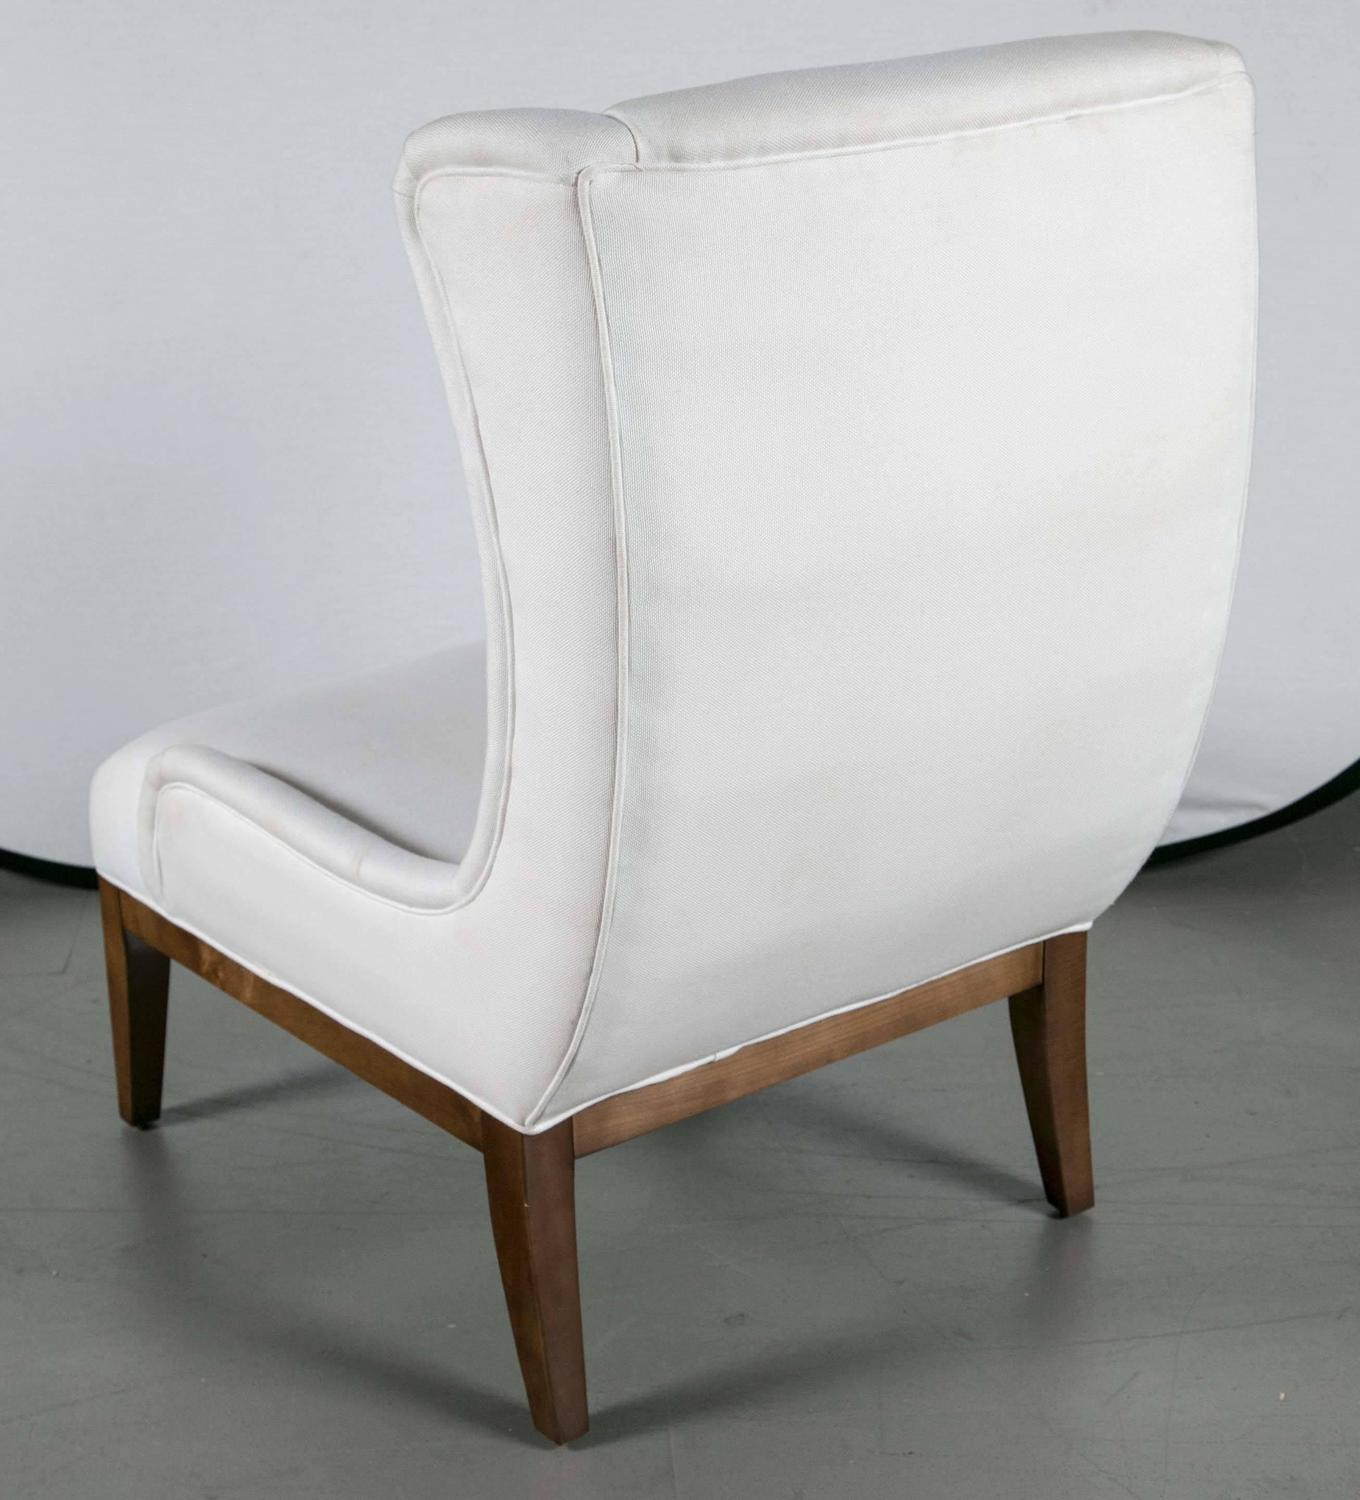 Unusual Furniture For Sale: Pair Of Unique Wing Chairs For Sale At 1stdibs